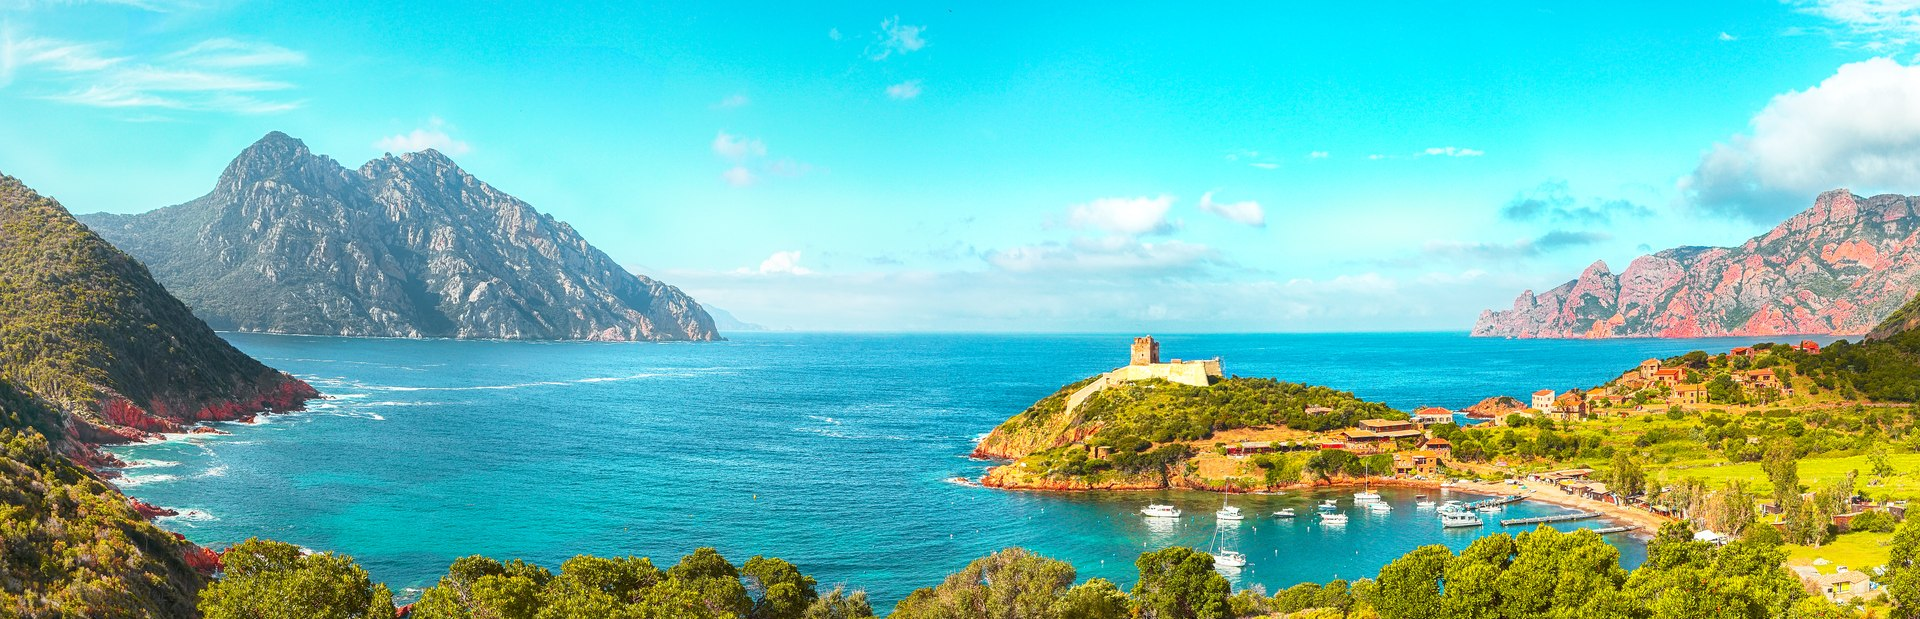 The best off-the-beaten-track places to visit in France by yacht